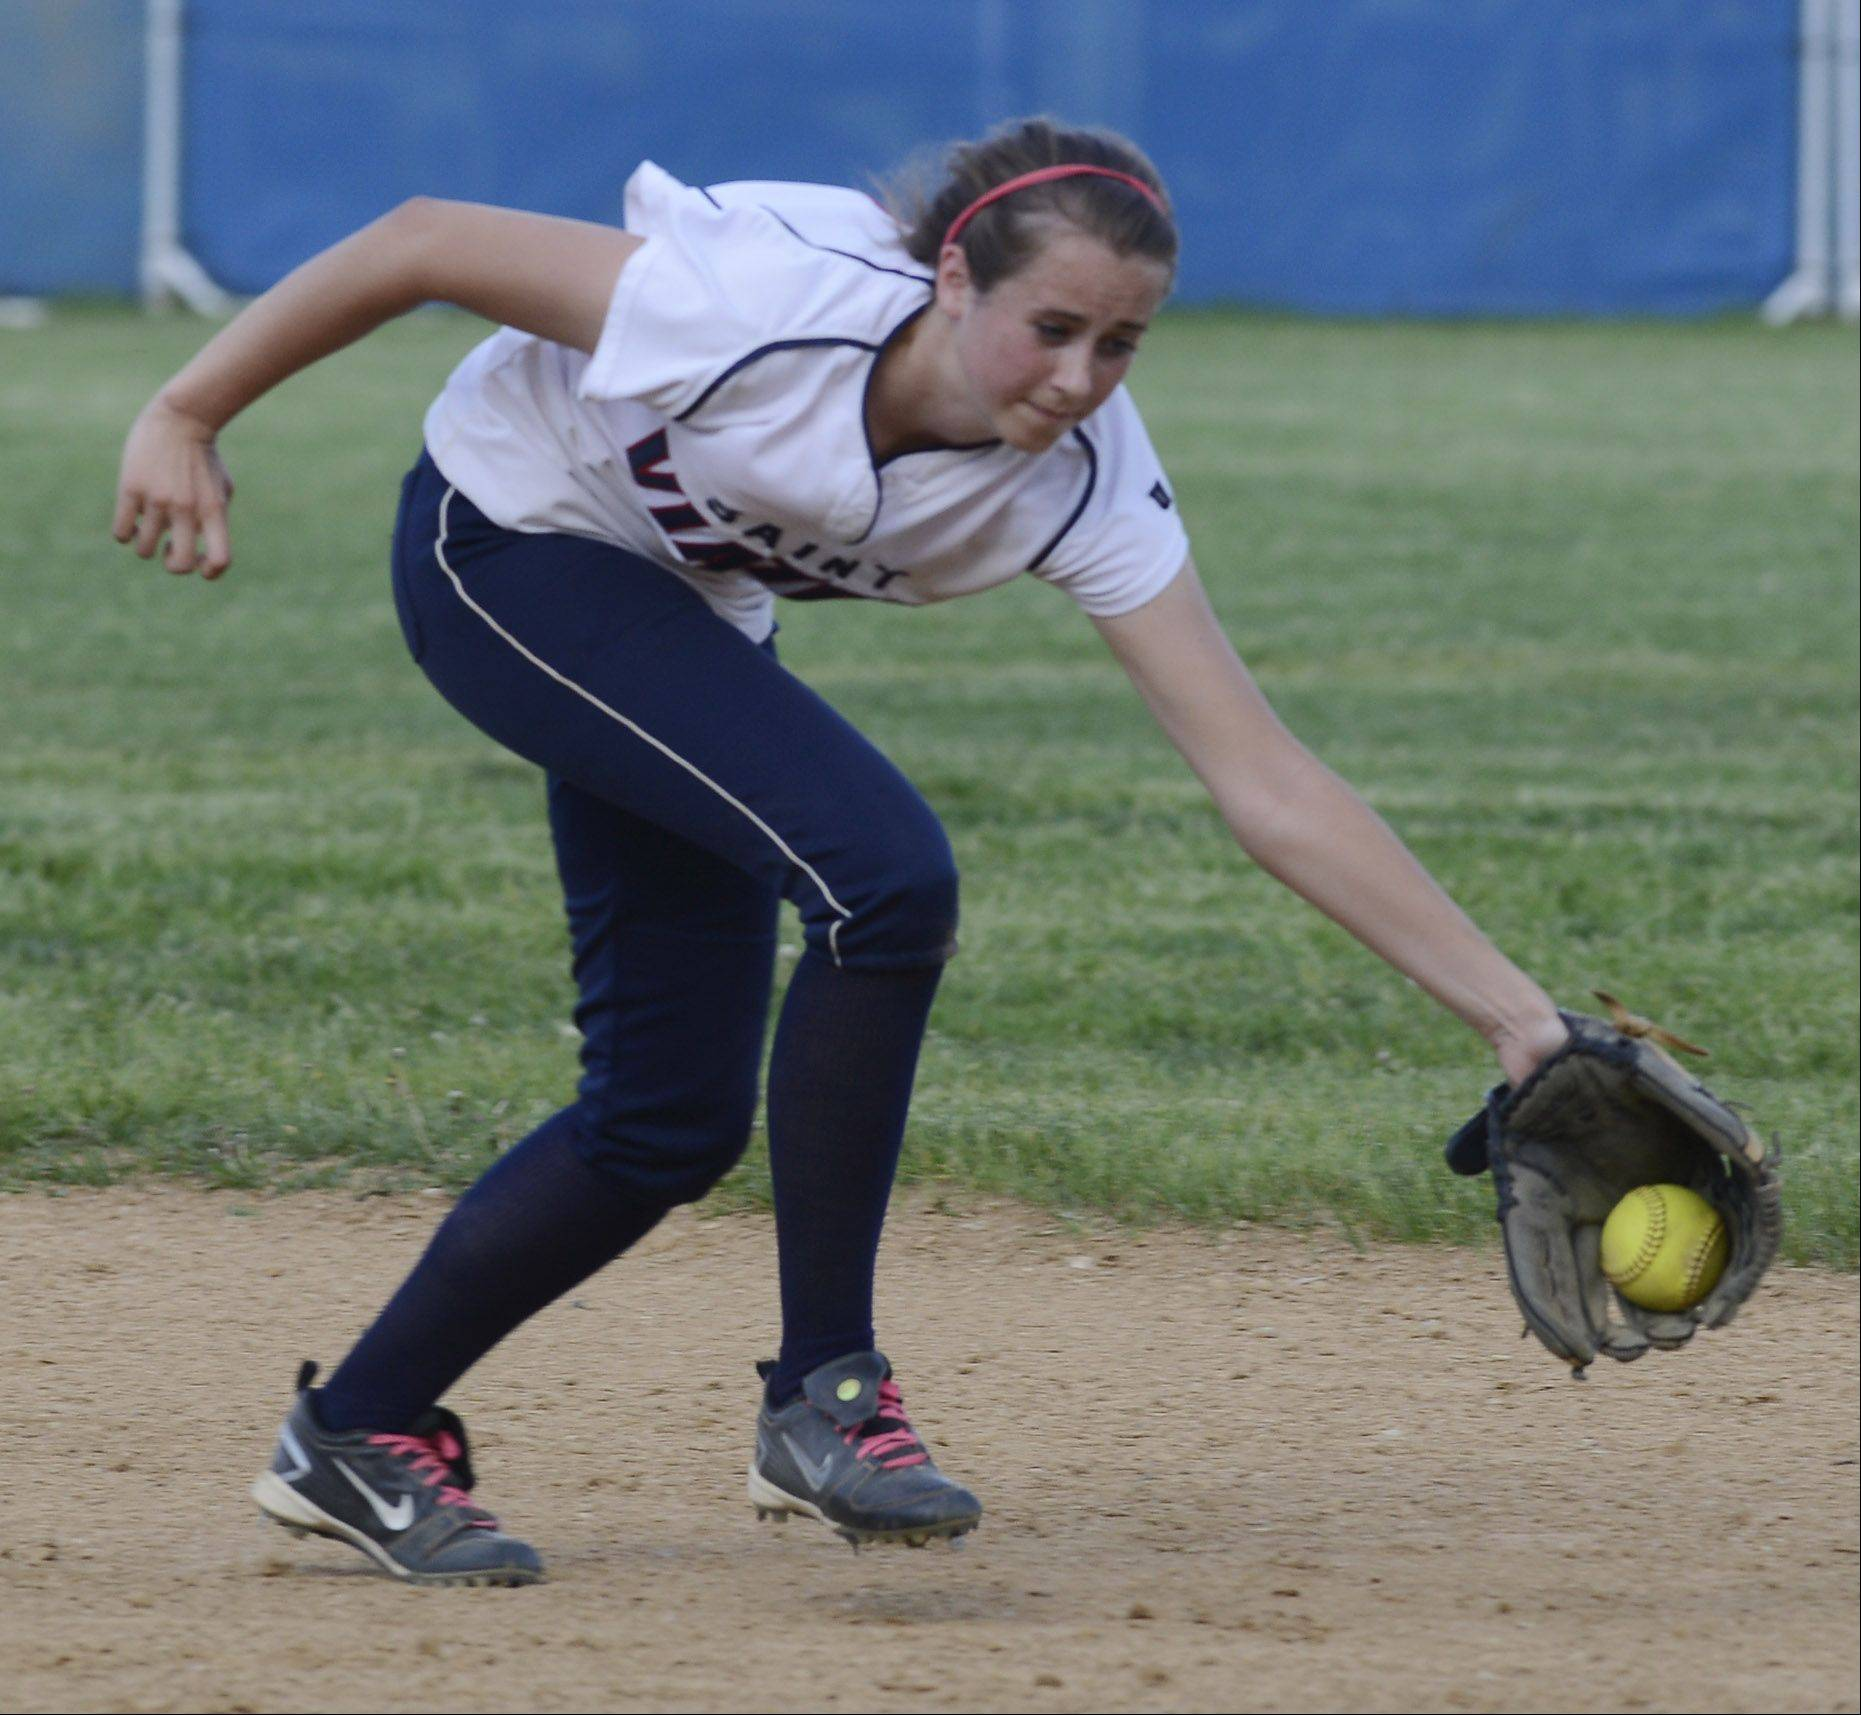 St. Viator shortstop Tess Kaiser fields a groundball but can't make a play in time against Vernon Hills during Tuesday's regional semifinal in Arlington Heights.